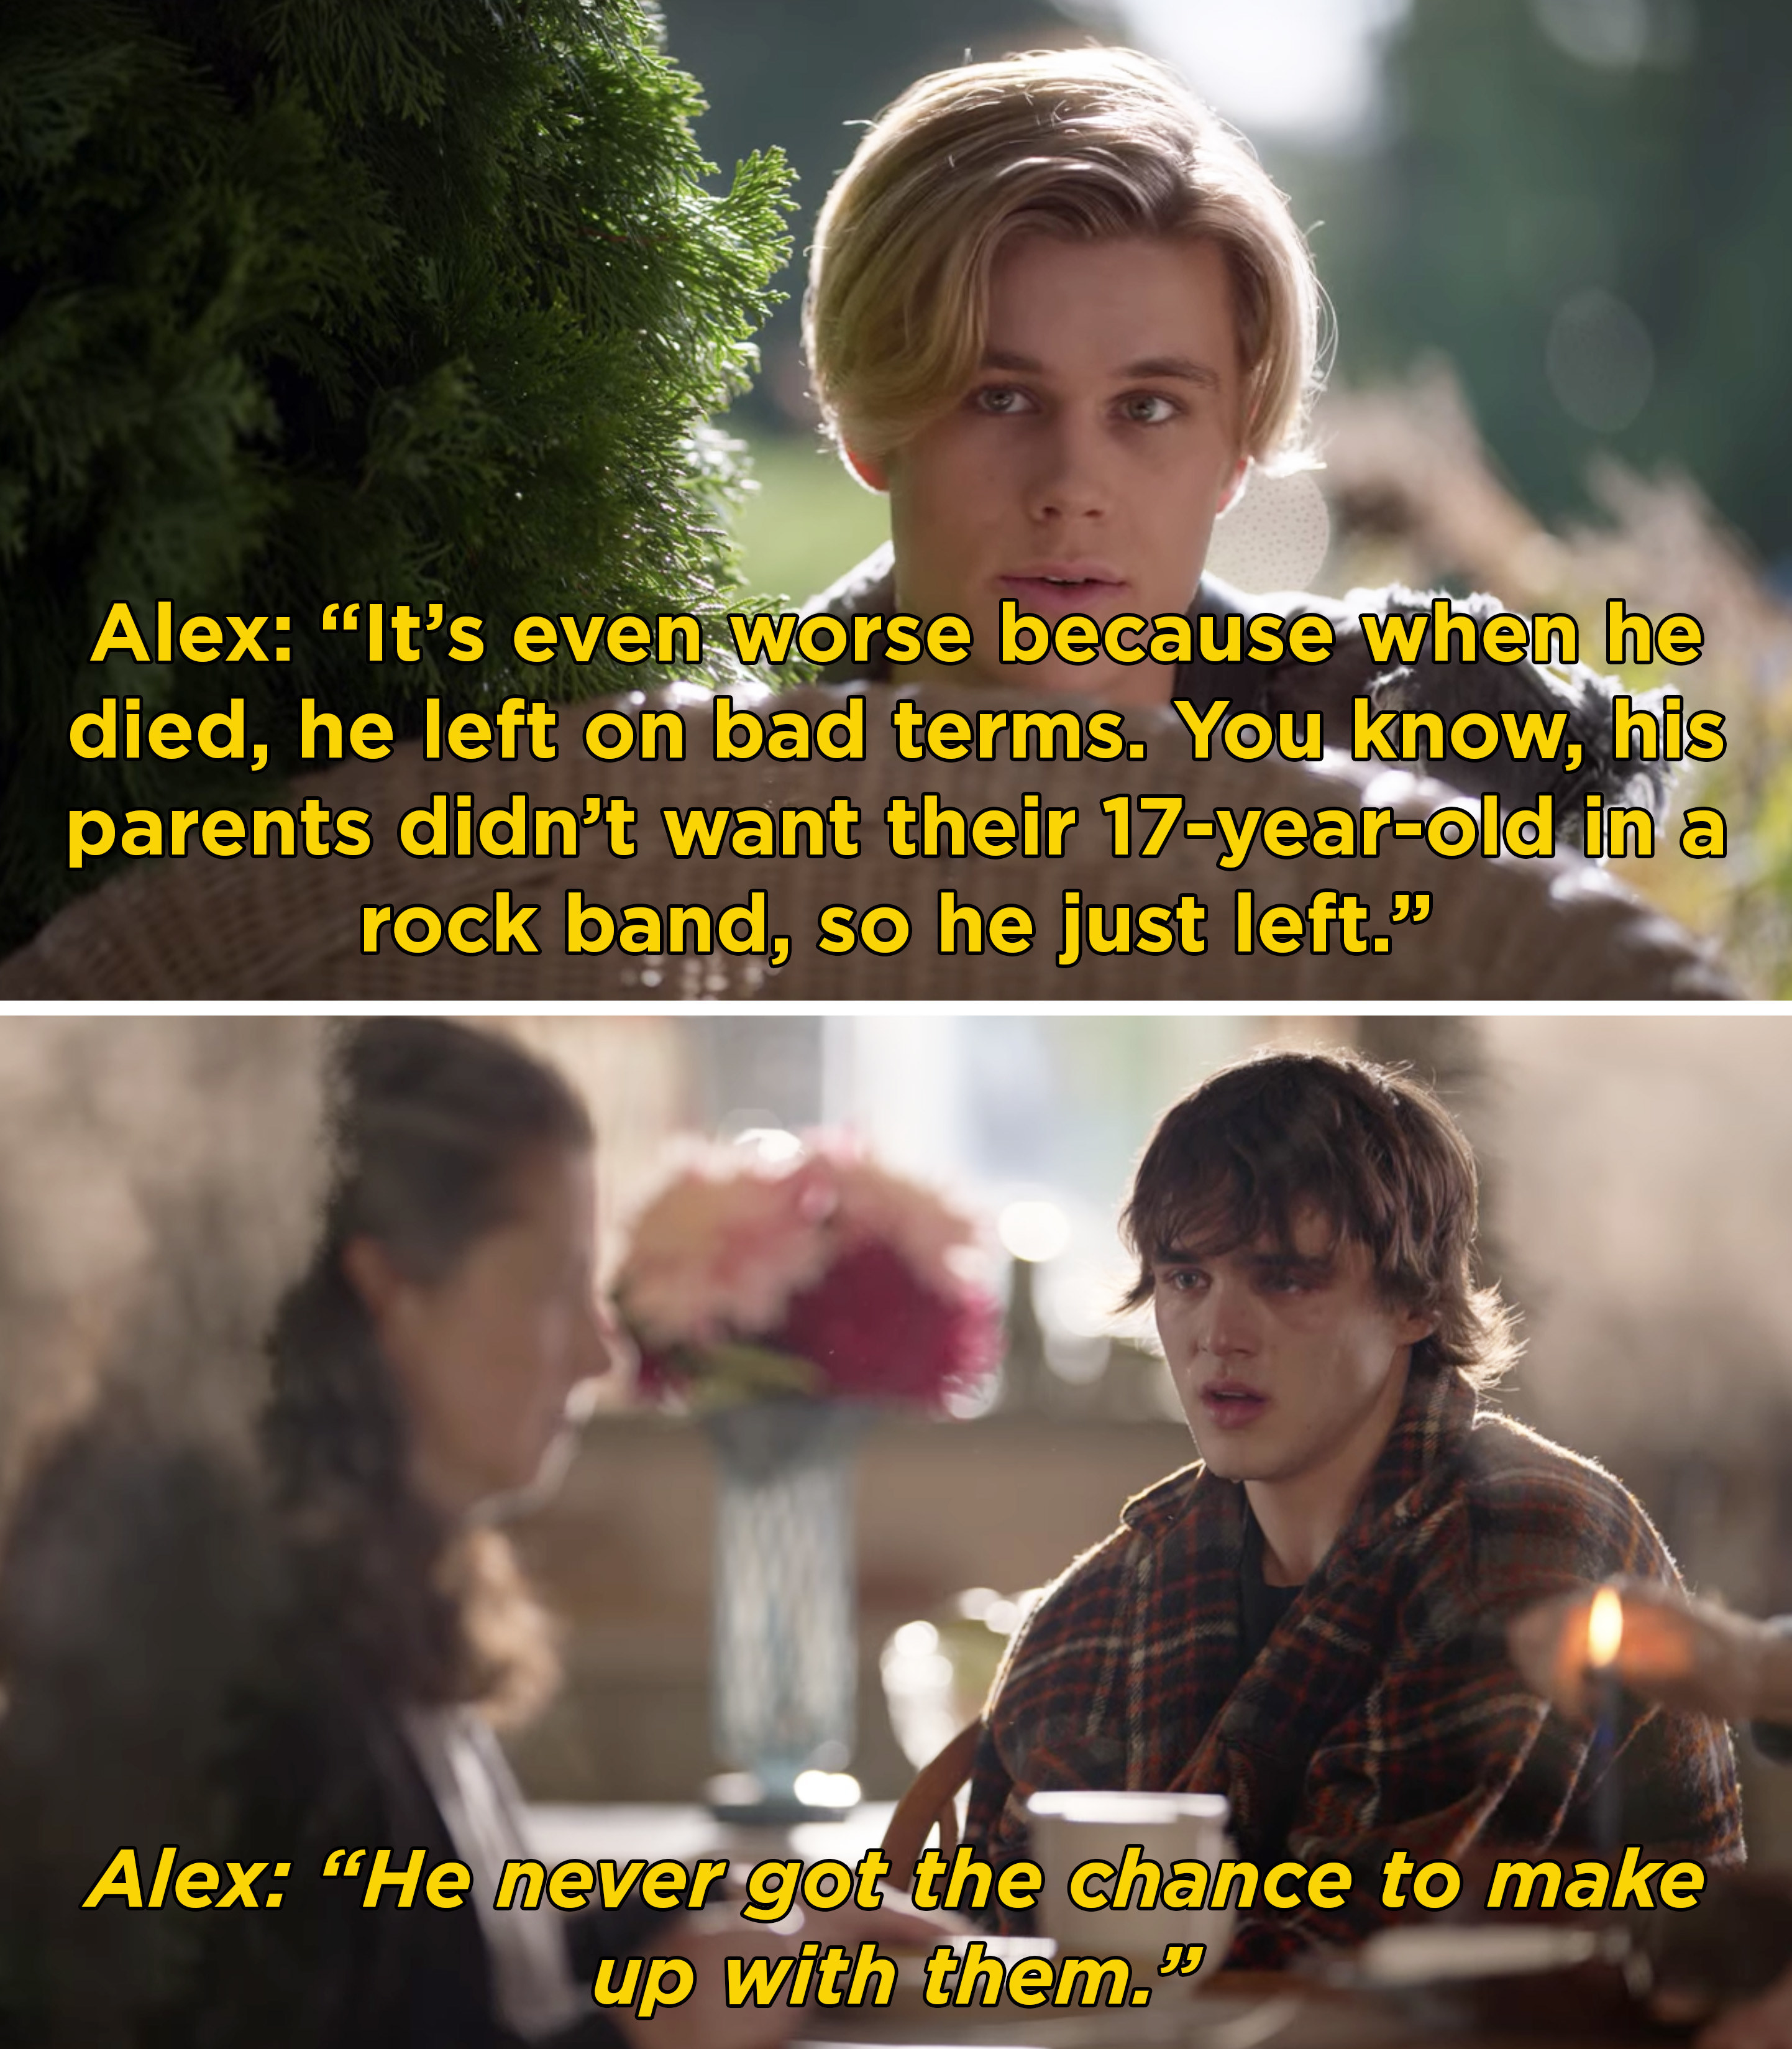 Alex explaining that Luke's parents didn't want him in a rock band, so he left on bad terms and never got to make up with them